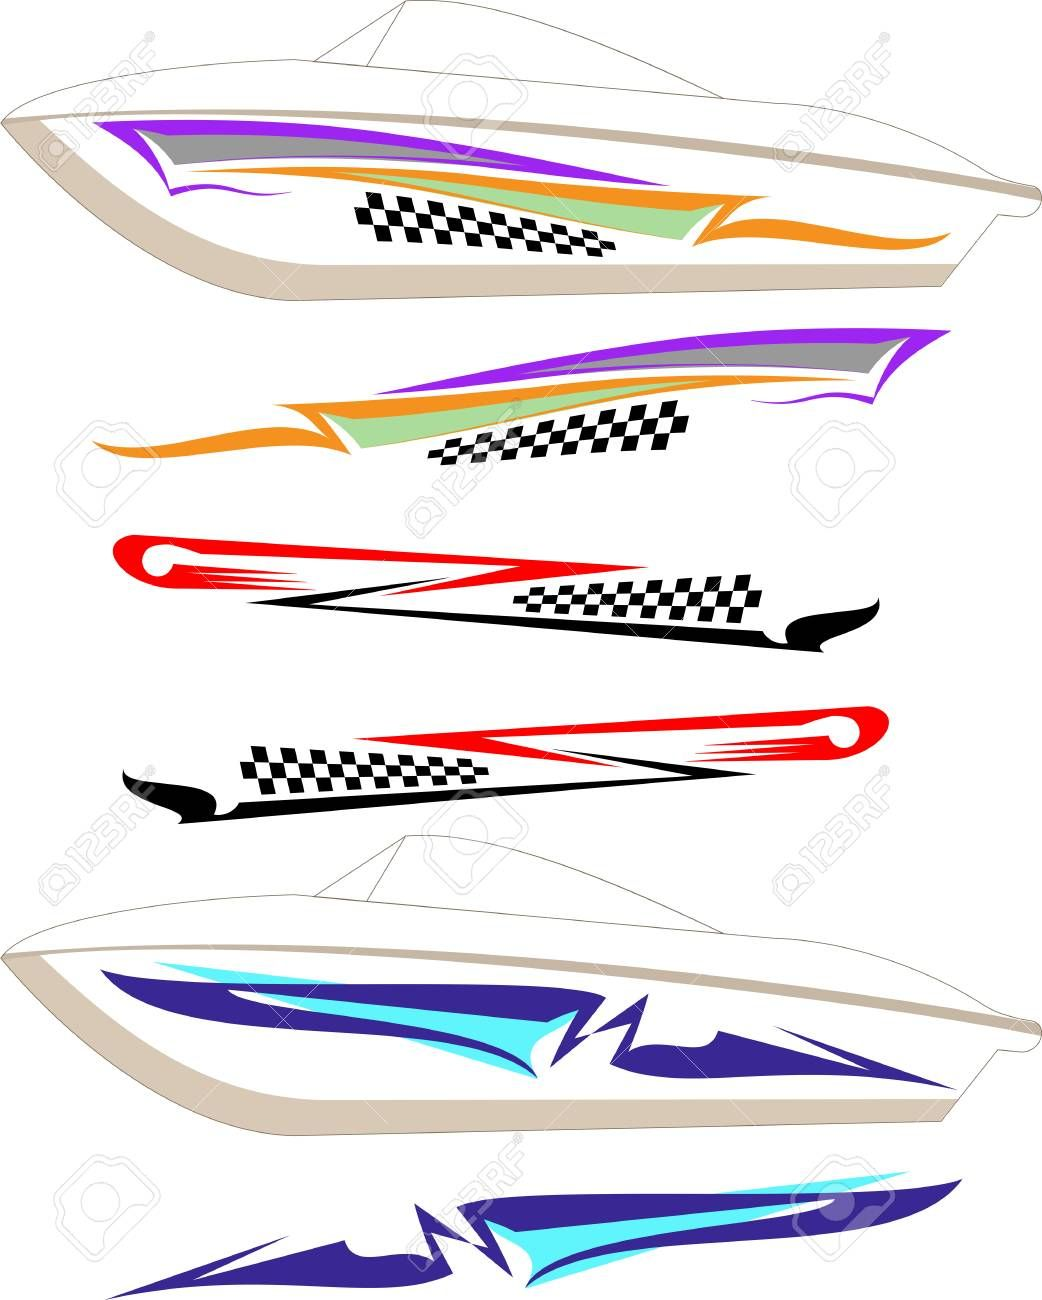 Boat Graphics Set Graphic Design Programs Graphic Boat Decals